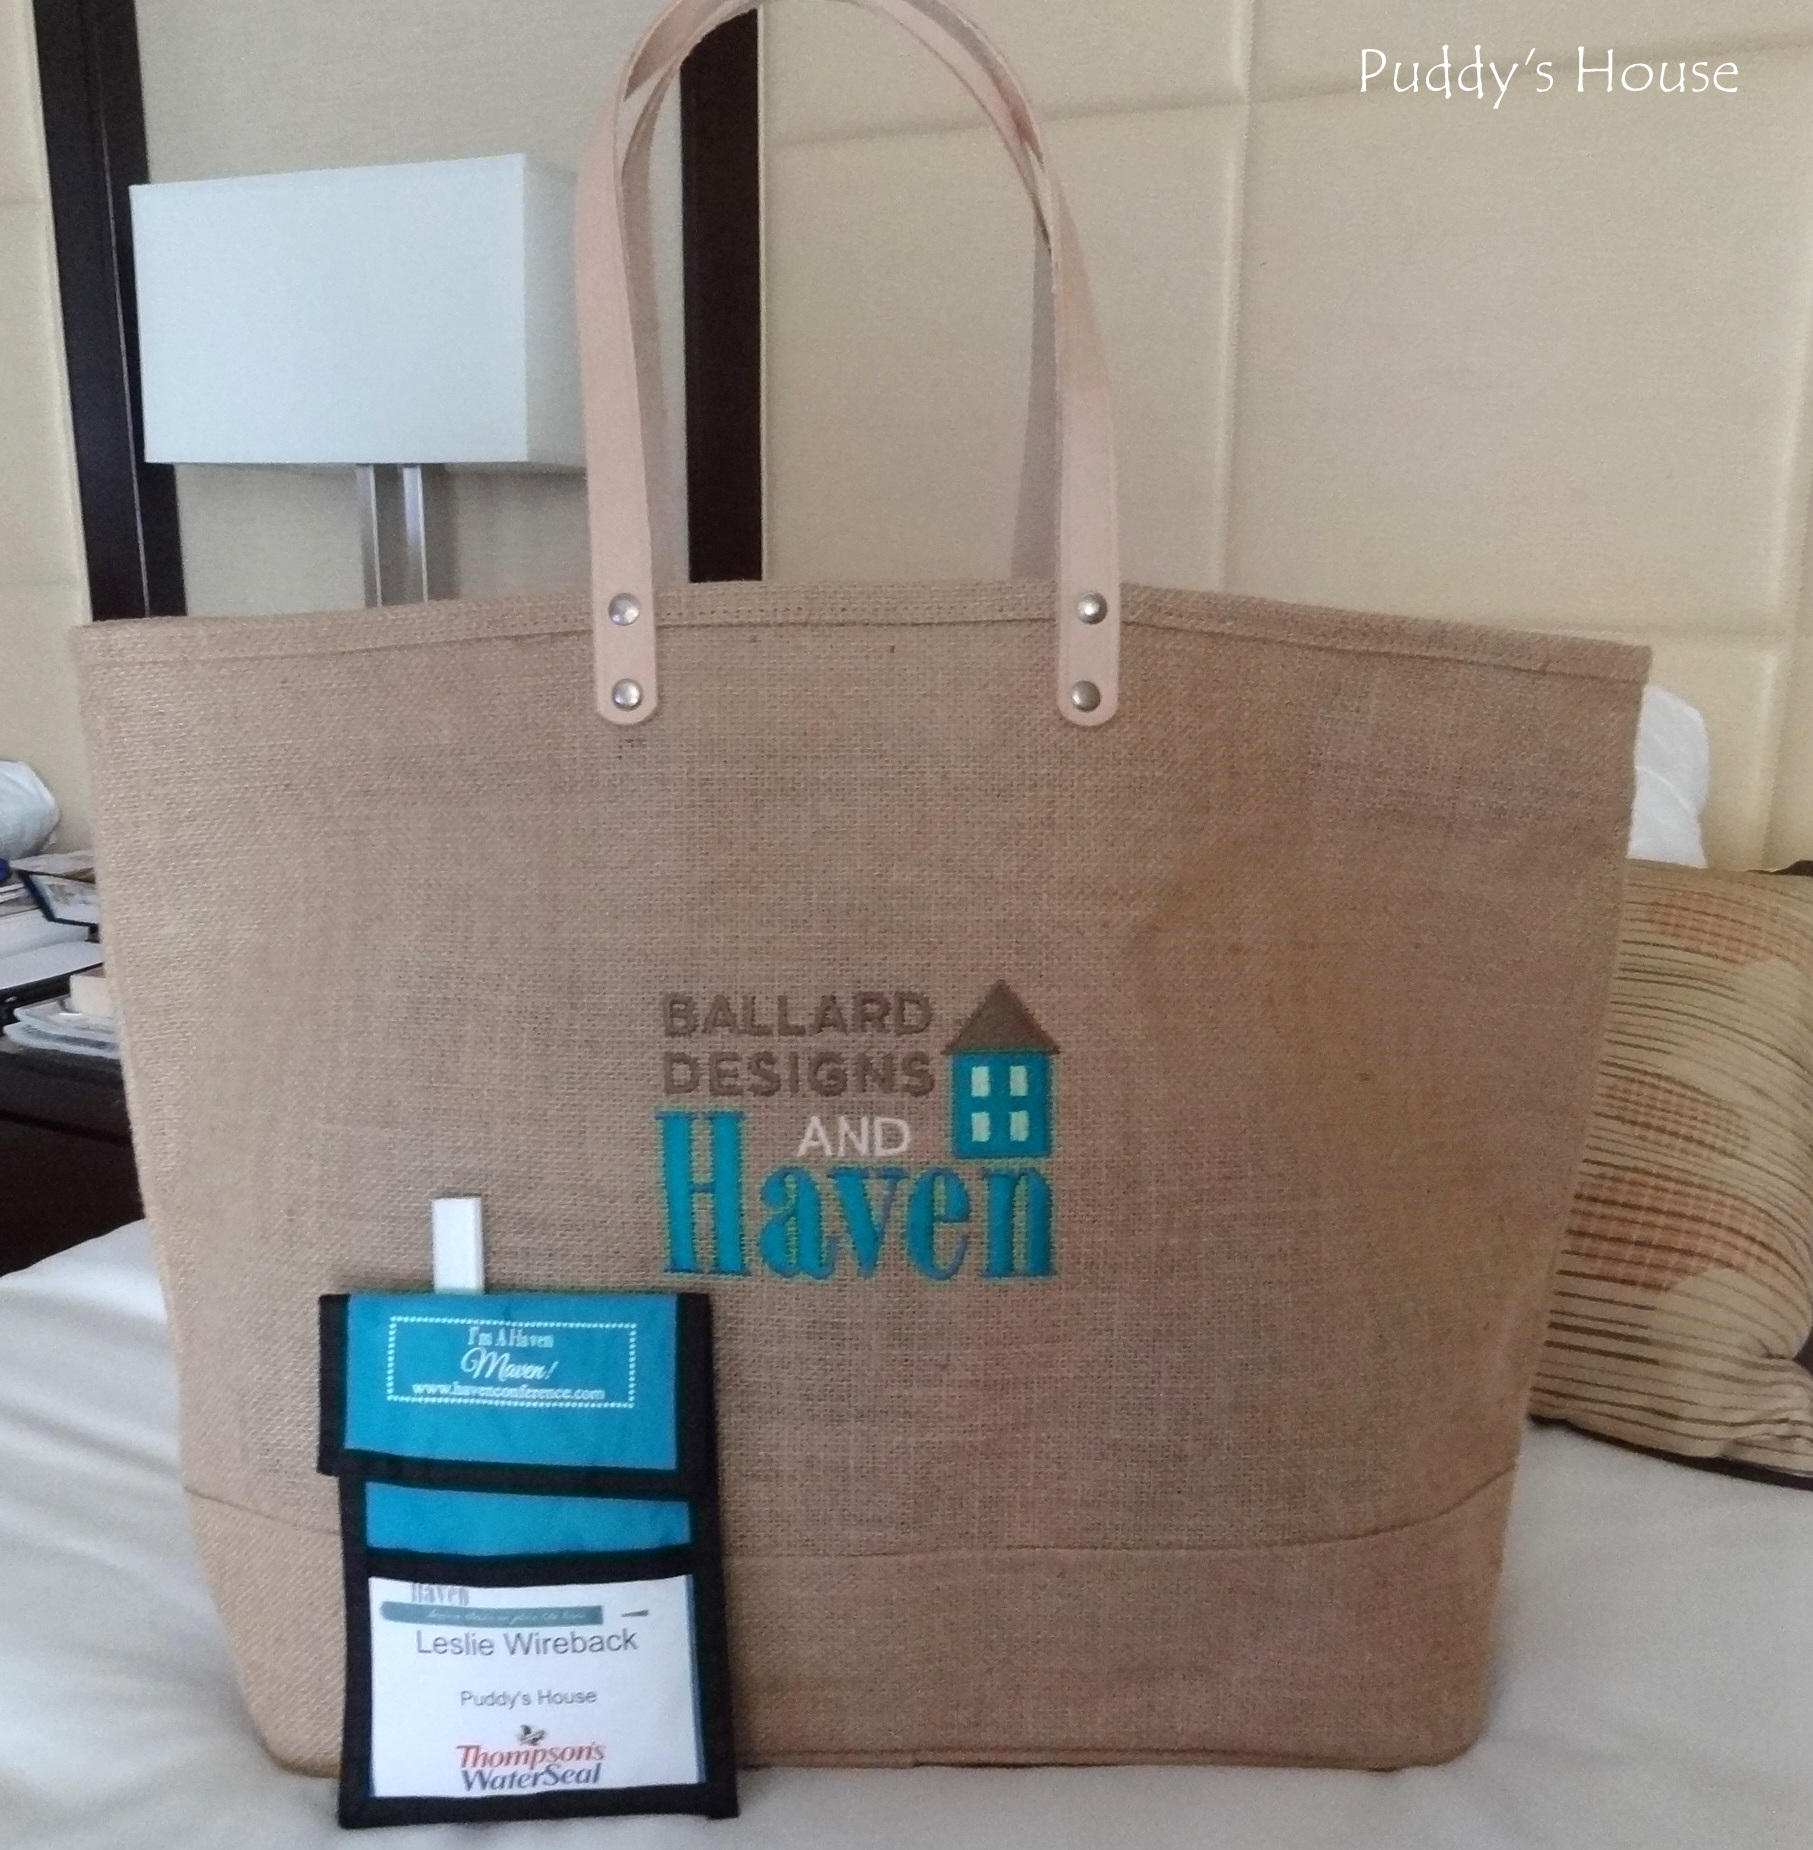 Haven 2013 - Swag Bag and Name Tag